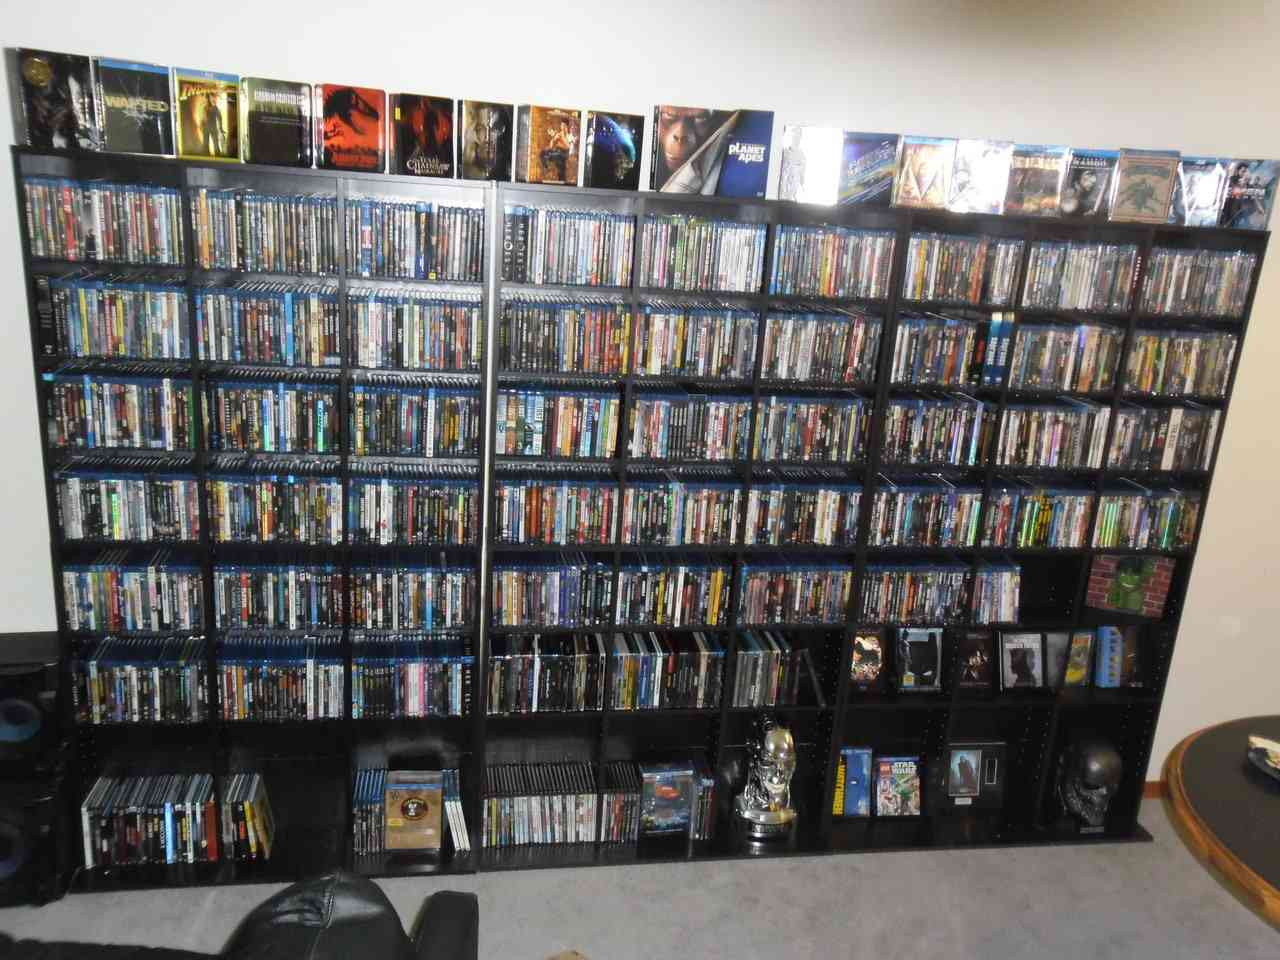 http://canadianonlinegamers.com/wp-content/uploads/2014/03/bluray-collection.jpg